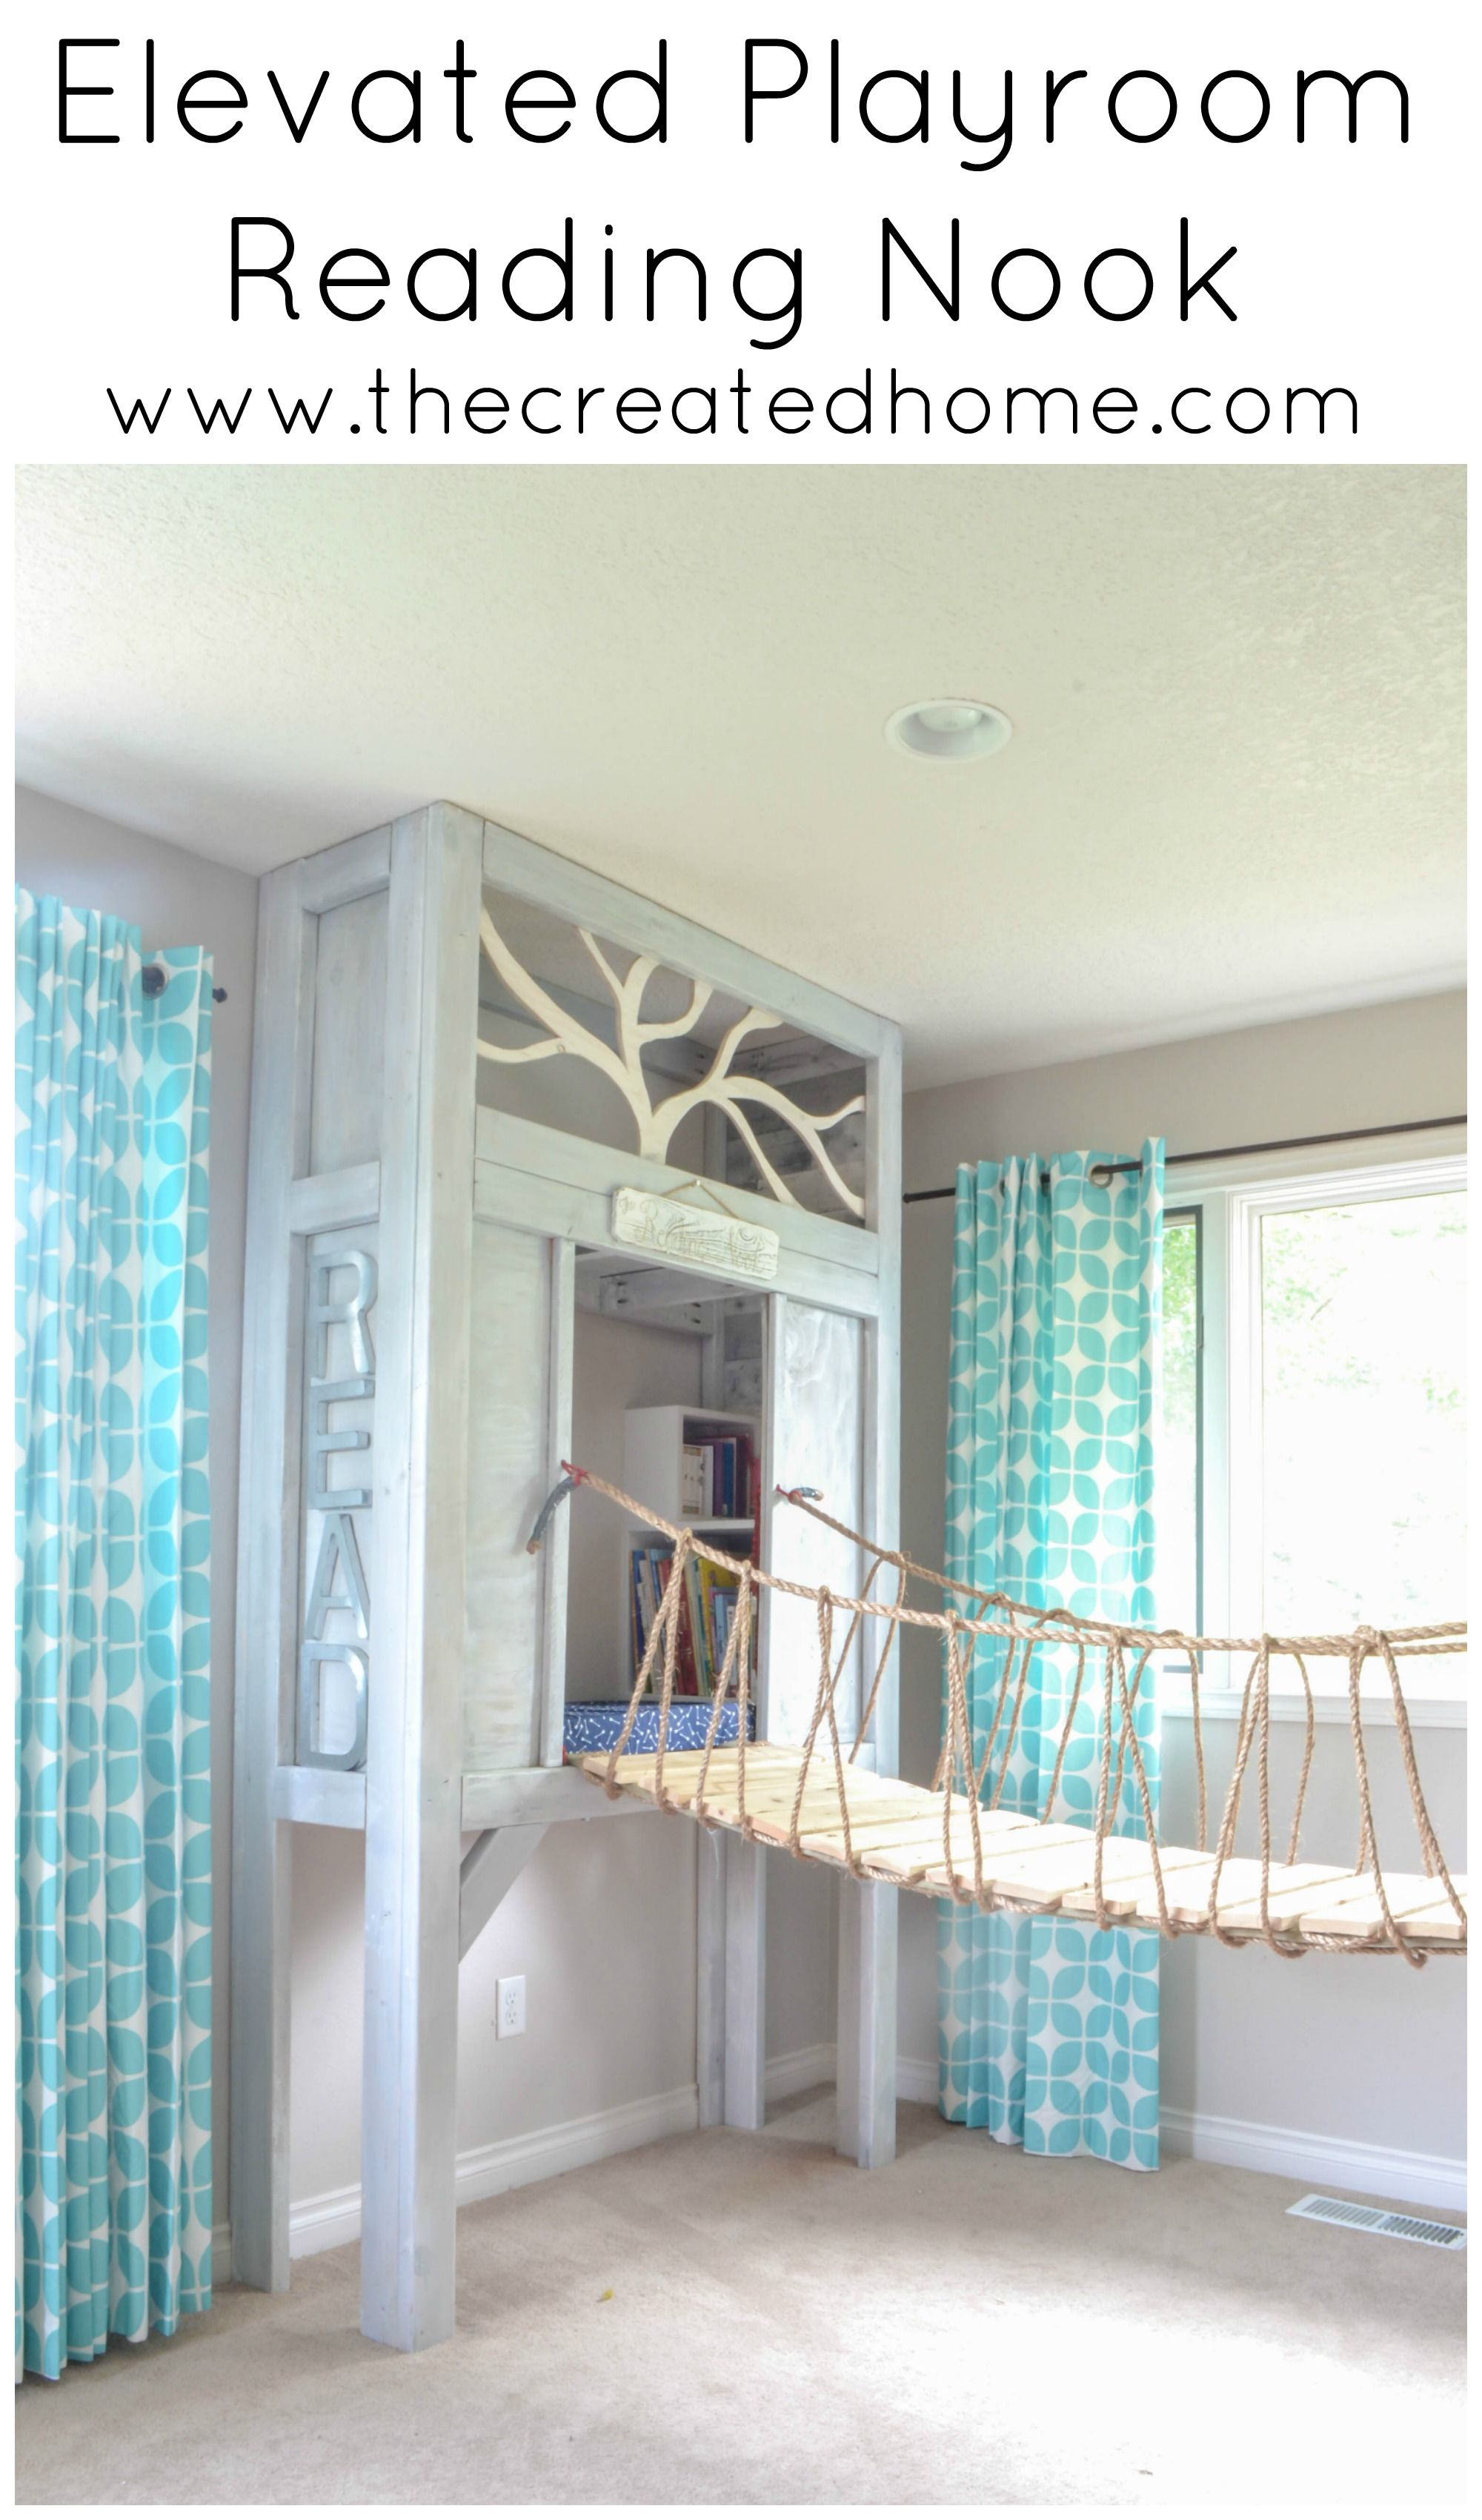 Design You Room: Elevated Playroom Reading Nook